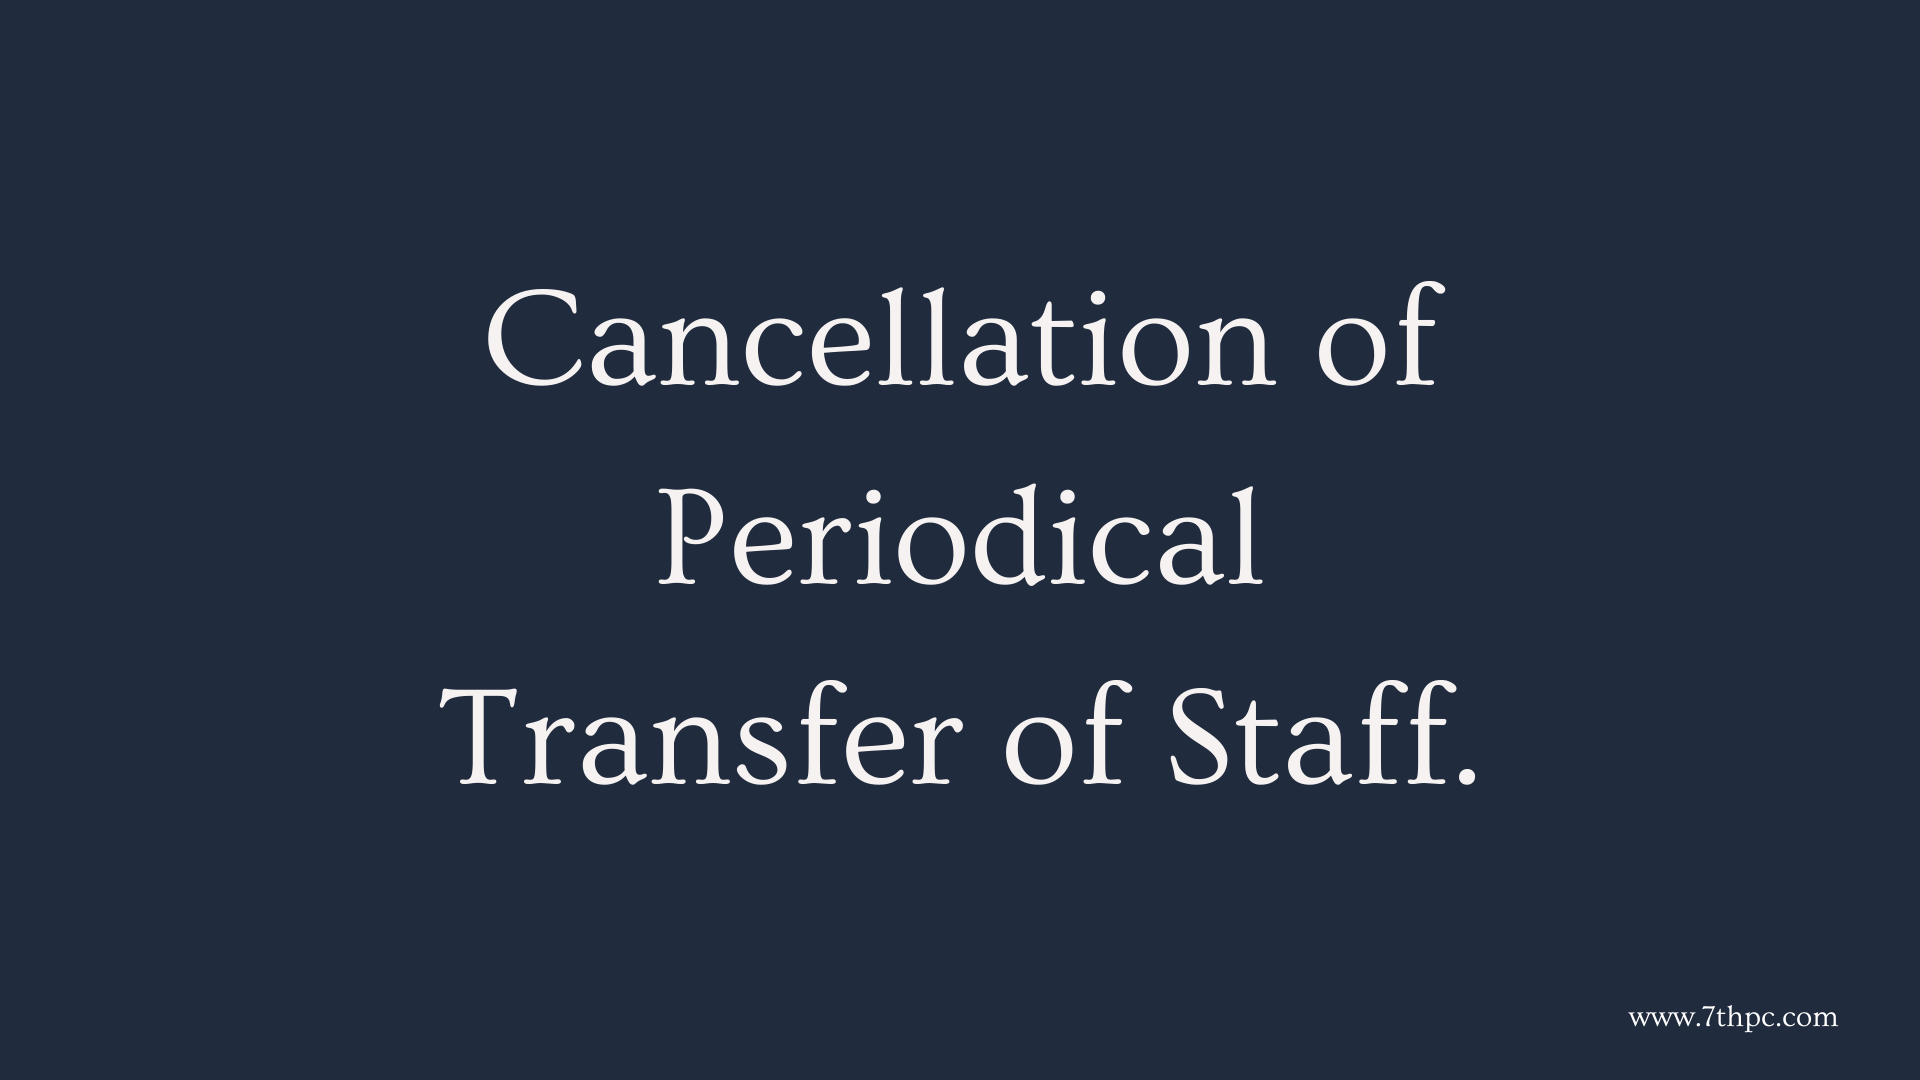 Cancellation of Periodical Transfer of Staff.